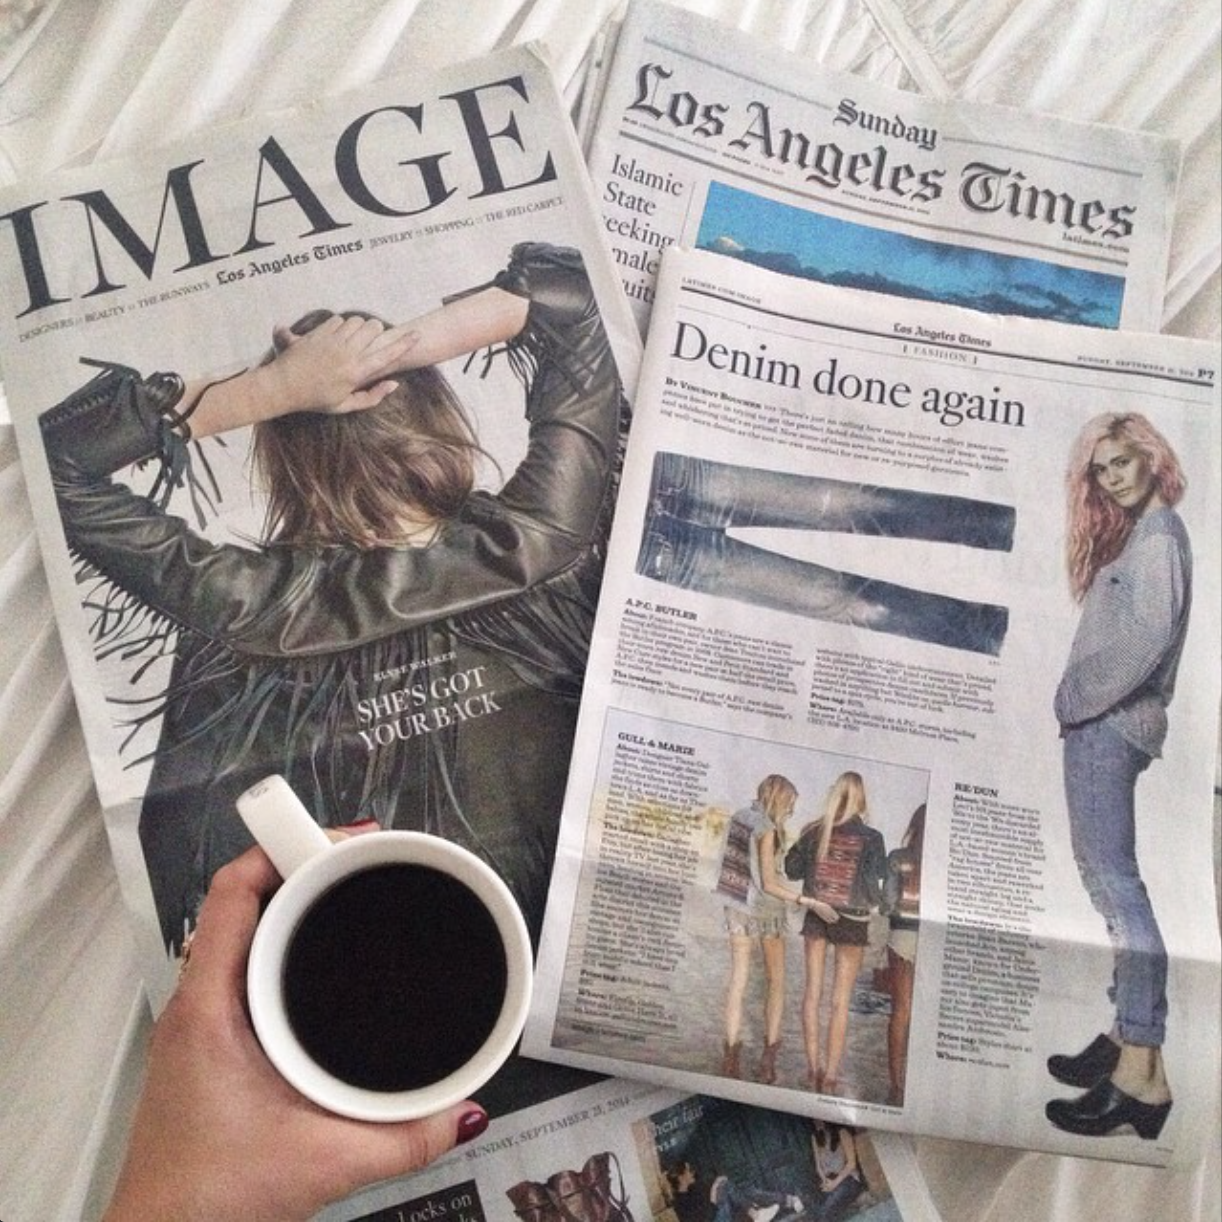 Los Angeles Times -